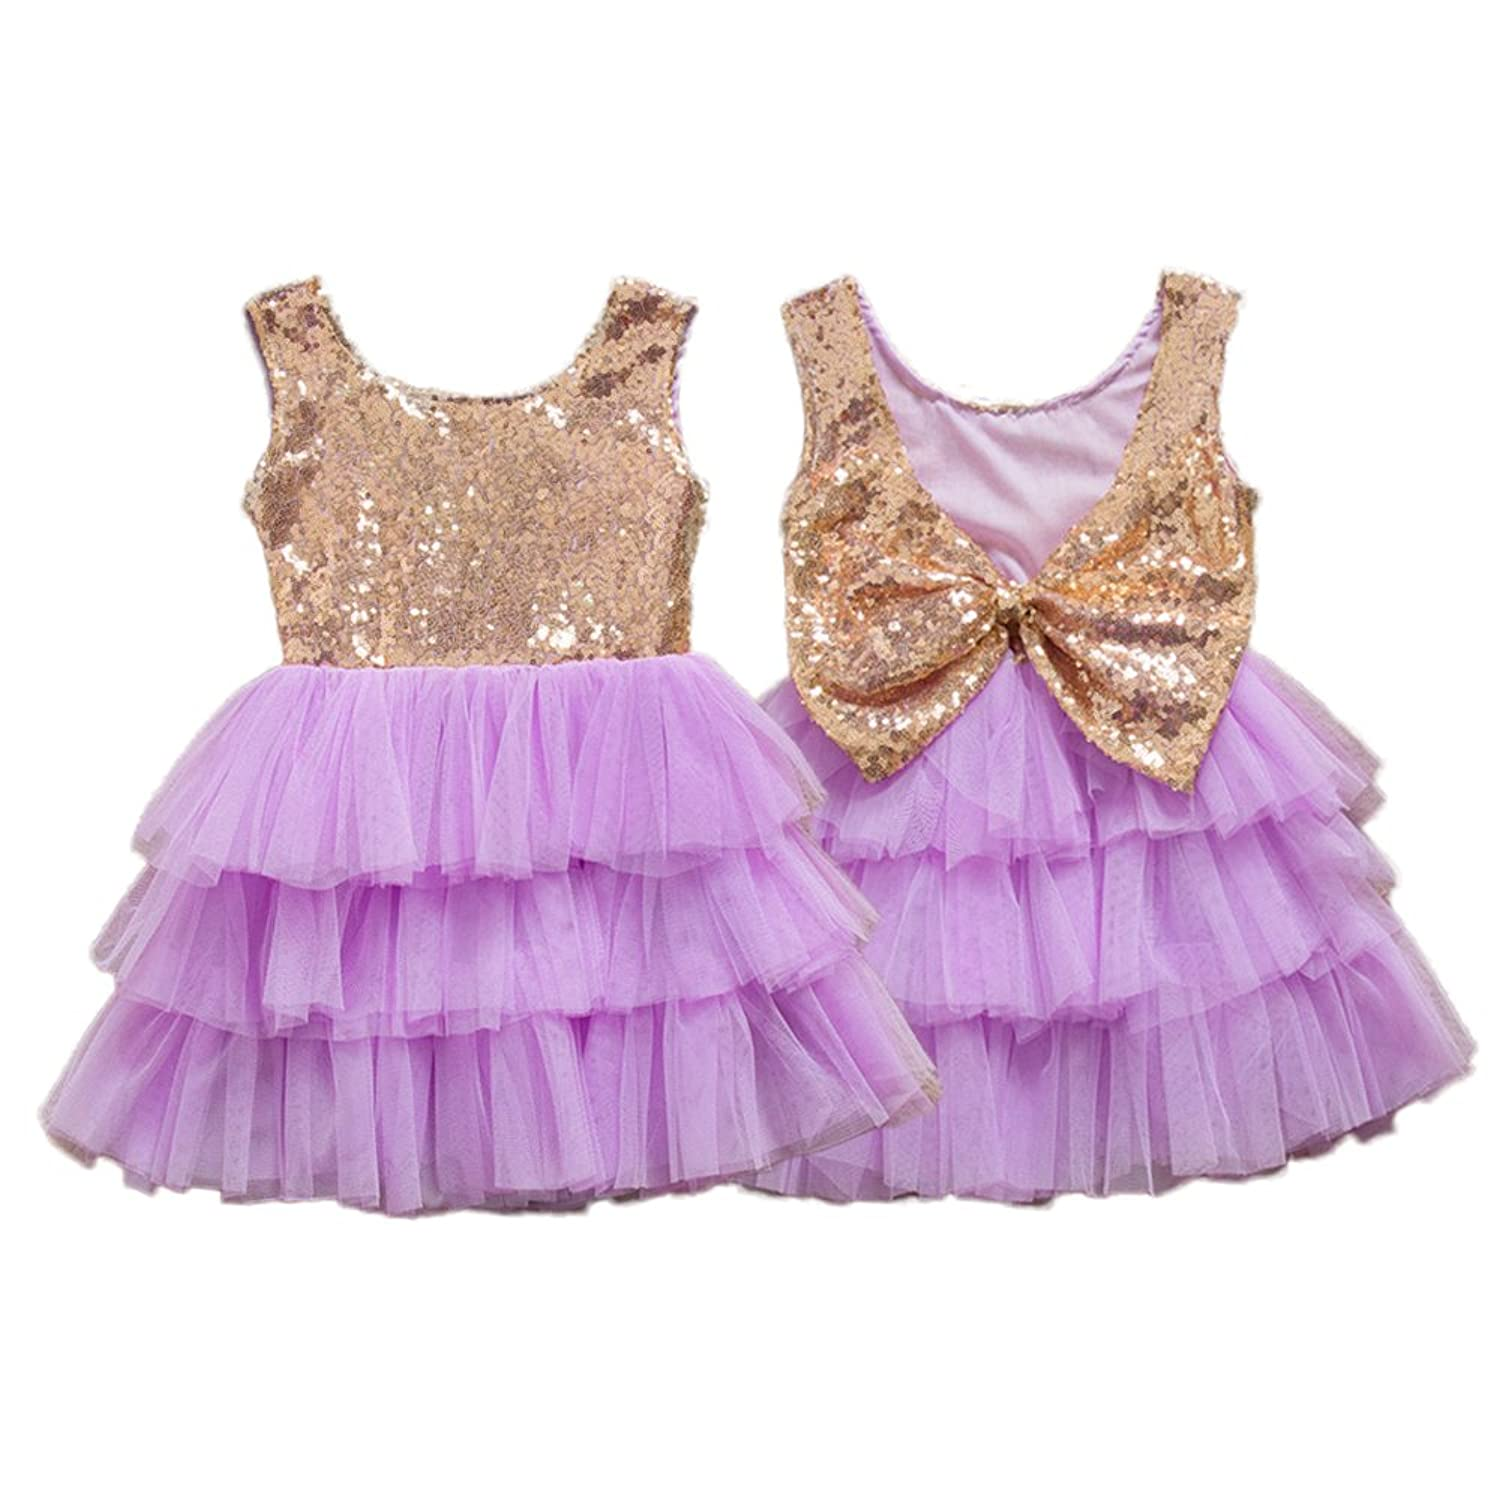 2af335c3f cotton, polyester, sequins. Imported TYPE: Backless, Knee Length,  Sleeveless,Tulle Dress for Little Girls / Toddler Kids DESIGN: Gold Sequins,  Backless with ...